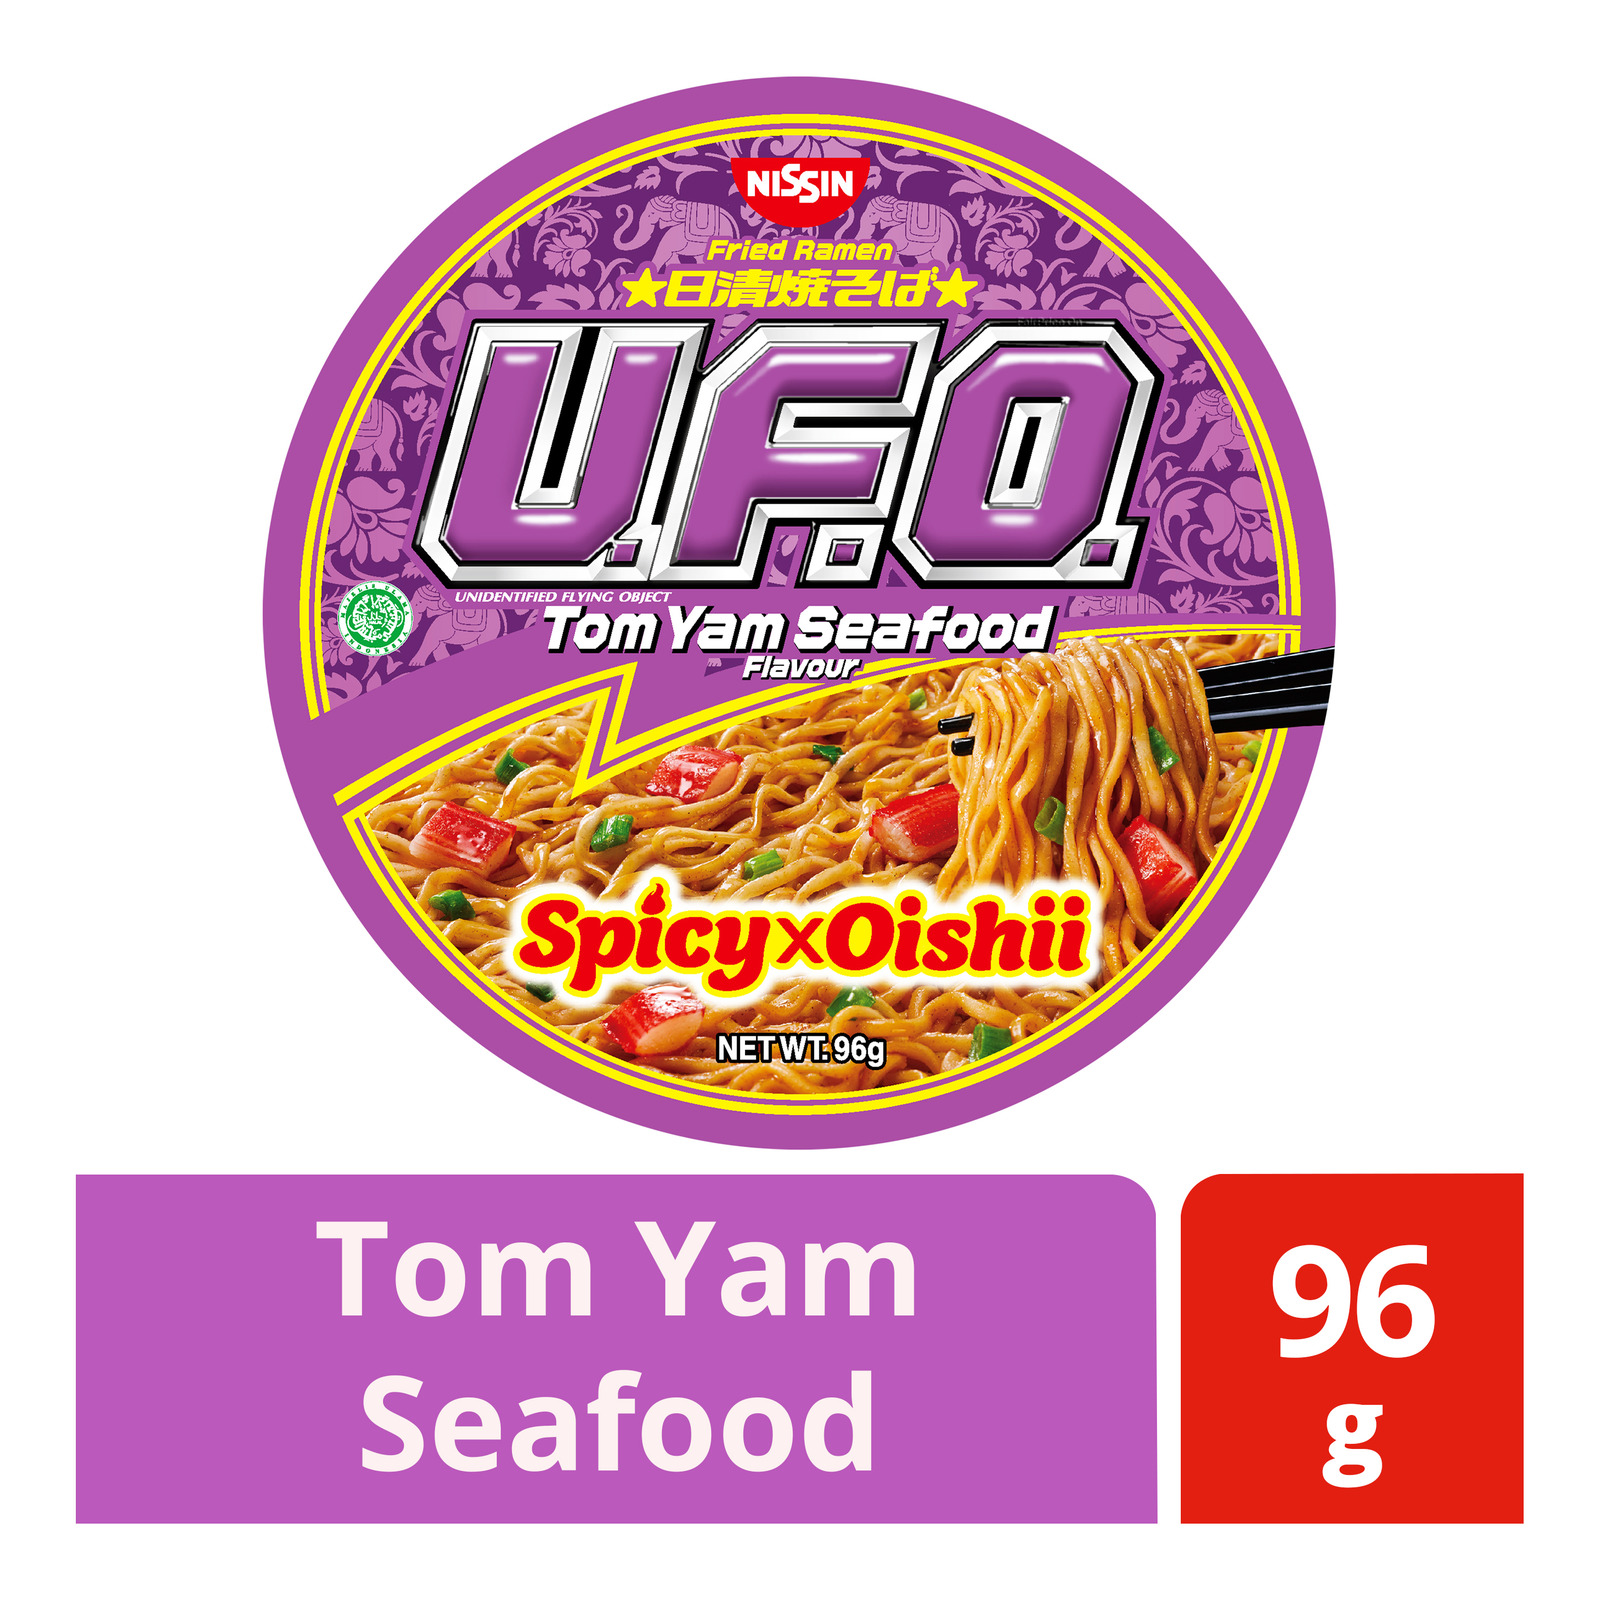 Nissin UFO Instant Bowl Fried Ramen - Tom Yam Seafood